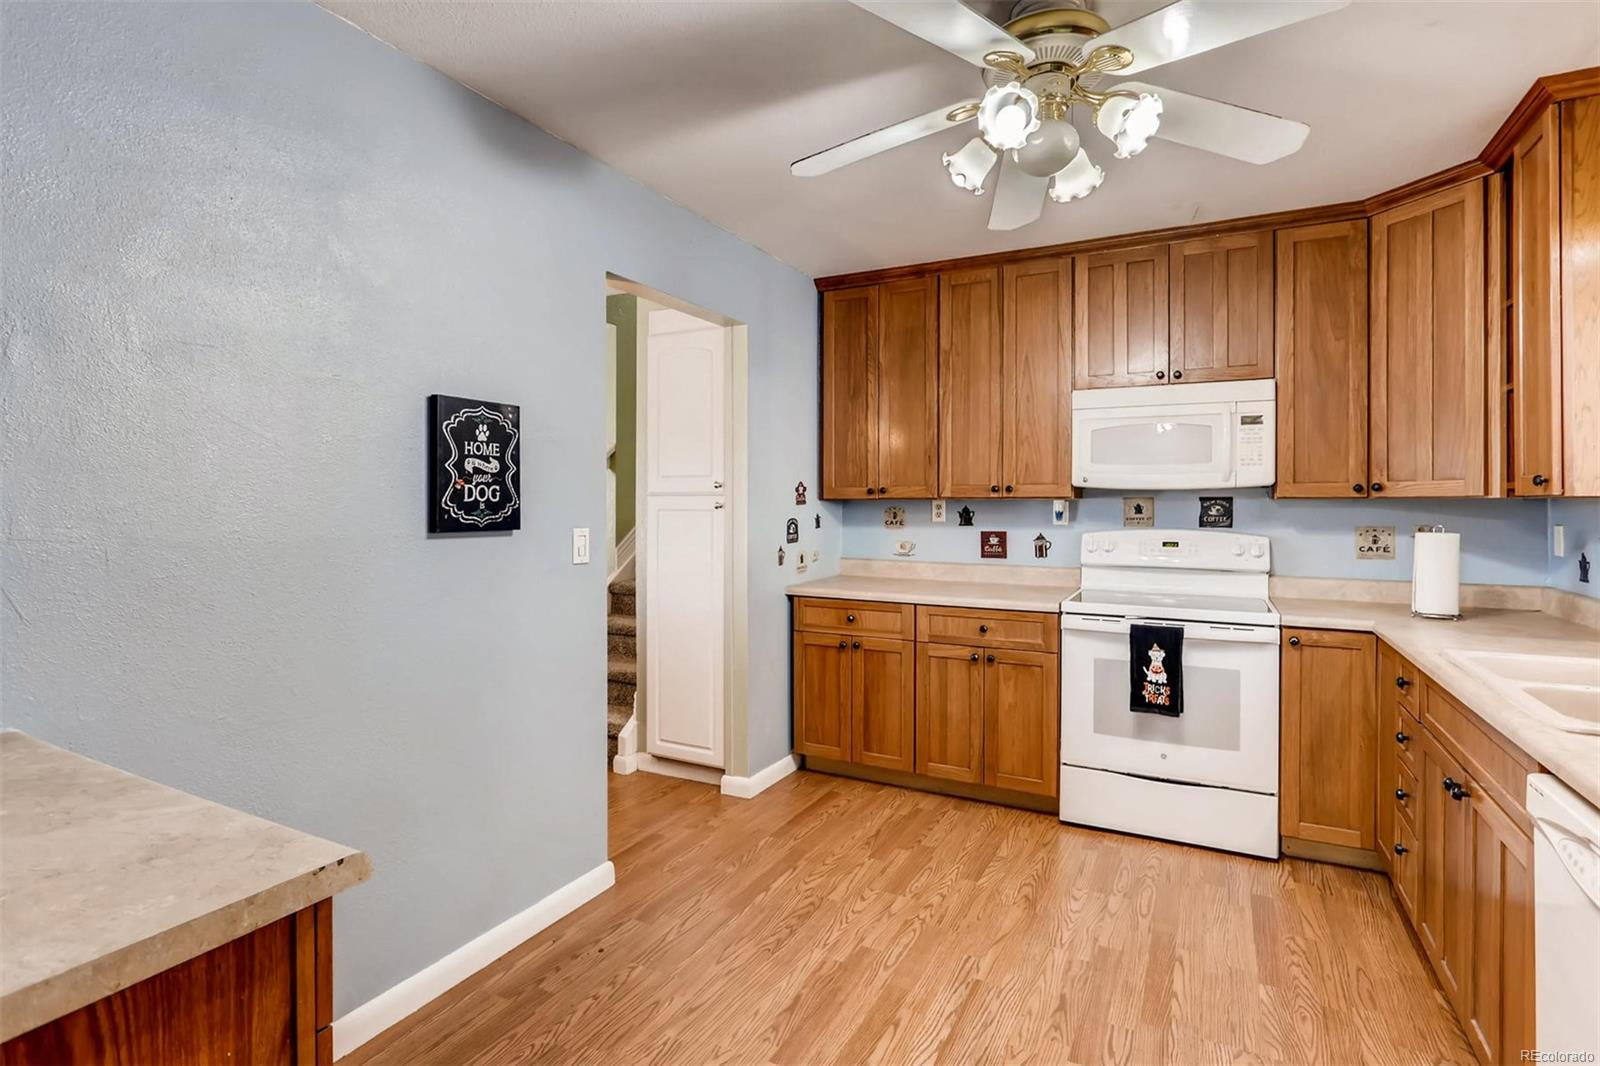 Plenty of cabinet and counter space in this open kitchen.